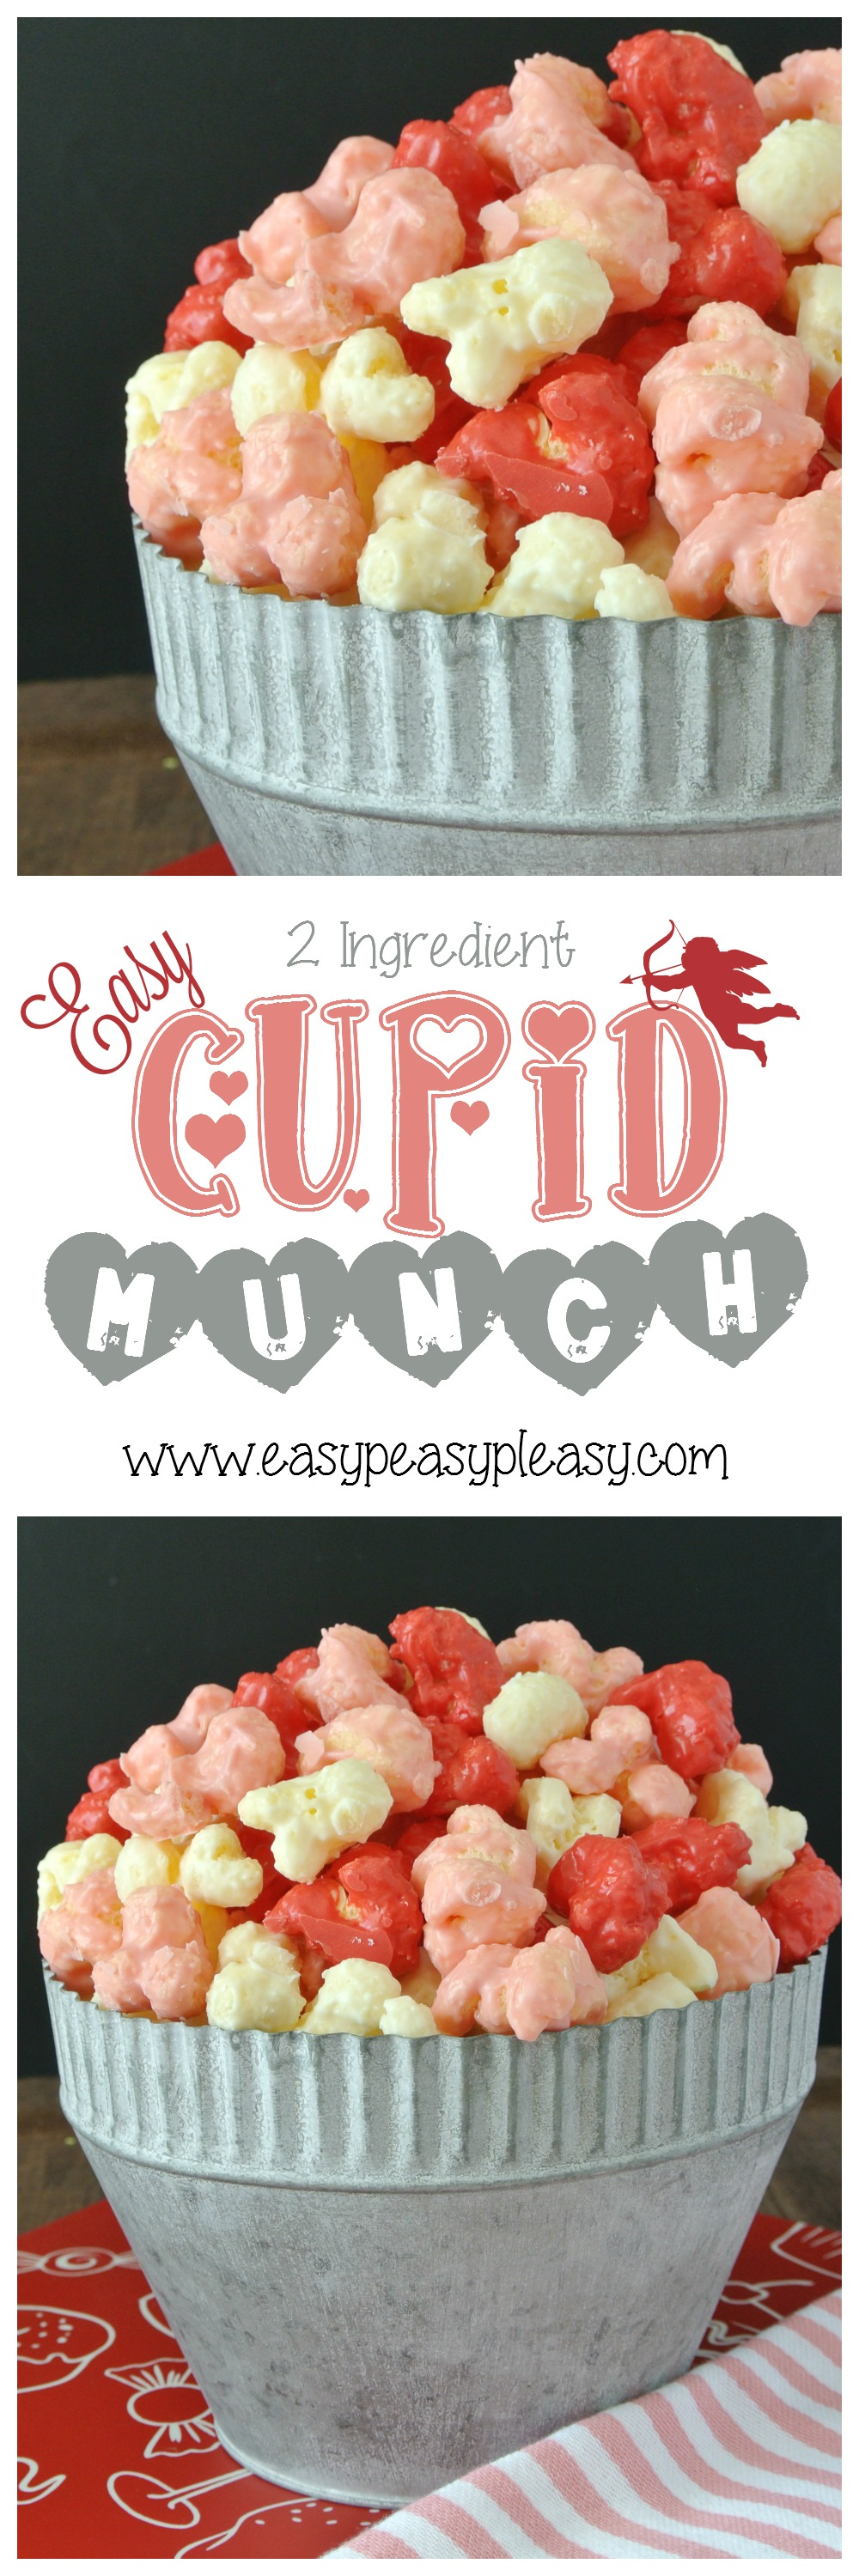 Shh...I have a secret! There's no popcorn in this recipe. Come find out how to make this Easy 2 Ingredient Cupid Munch for Valentine's Day!